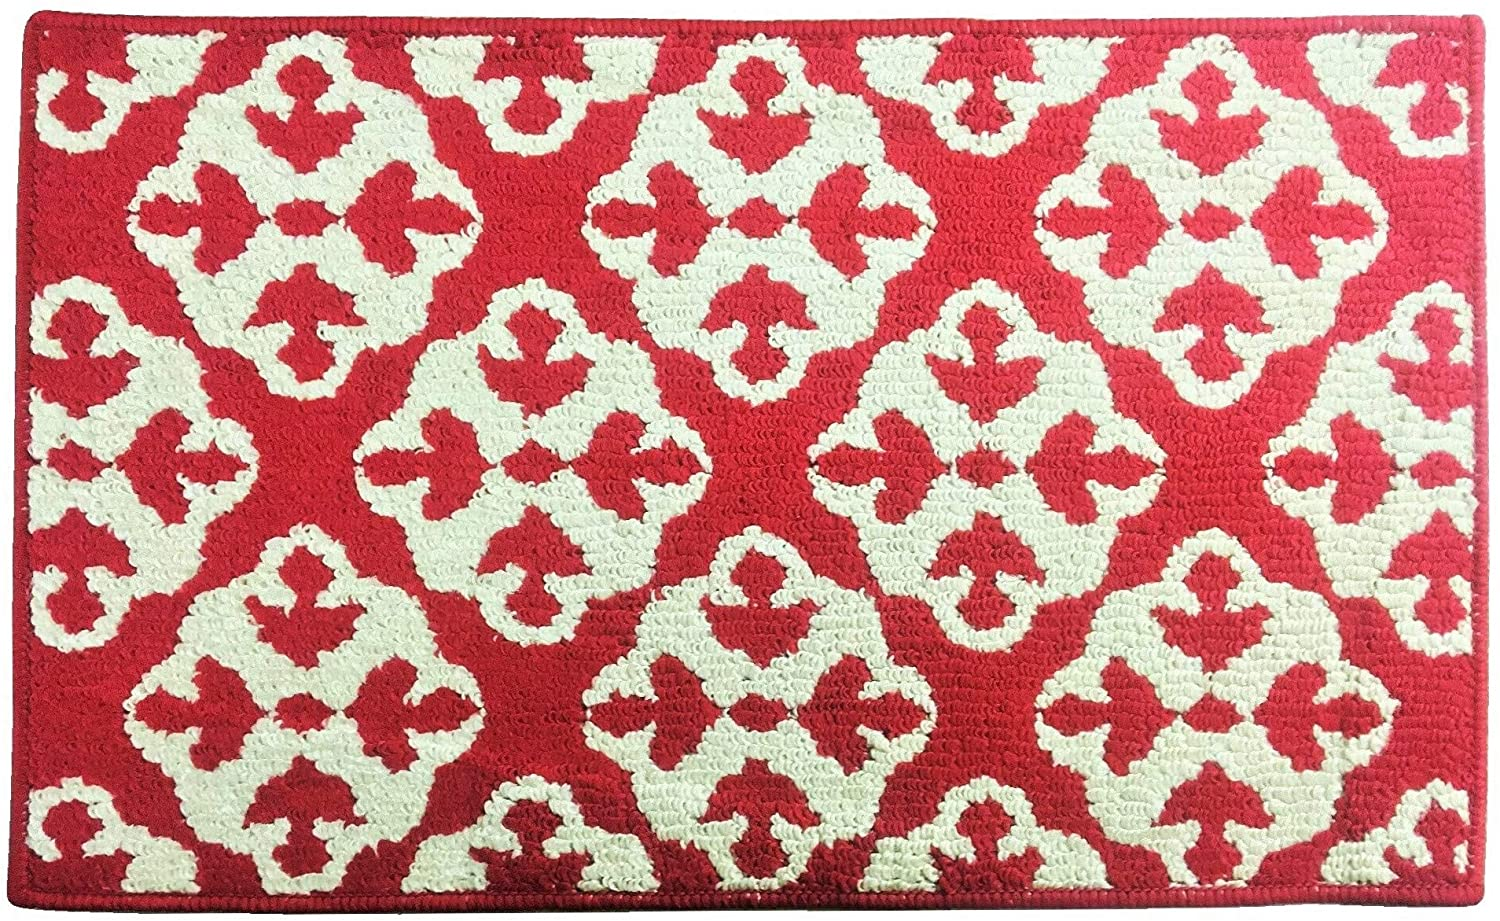 Fashion Medallion Pattern Rug, Non-Skid Home, Kitchen, Floor Mat, Comfortable Standing and Entrance Rug, 17